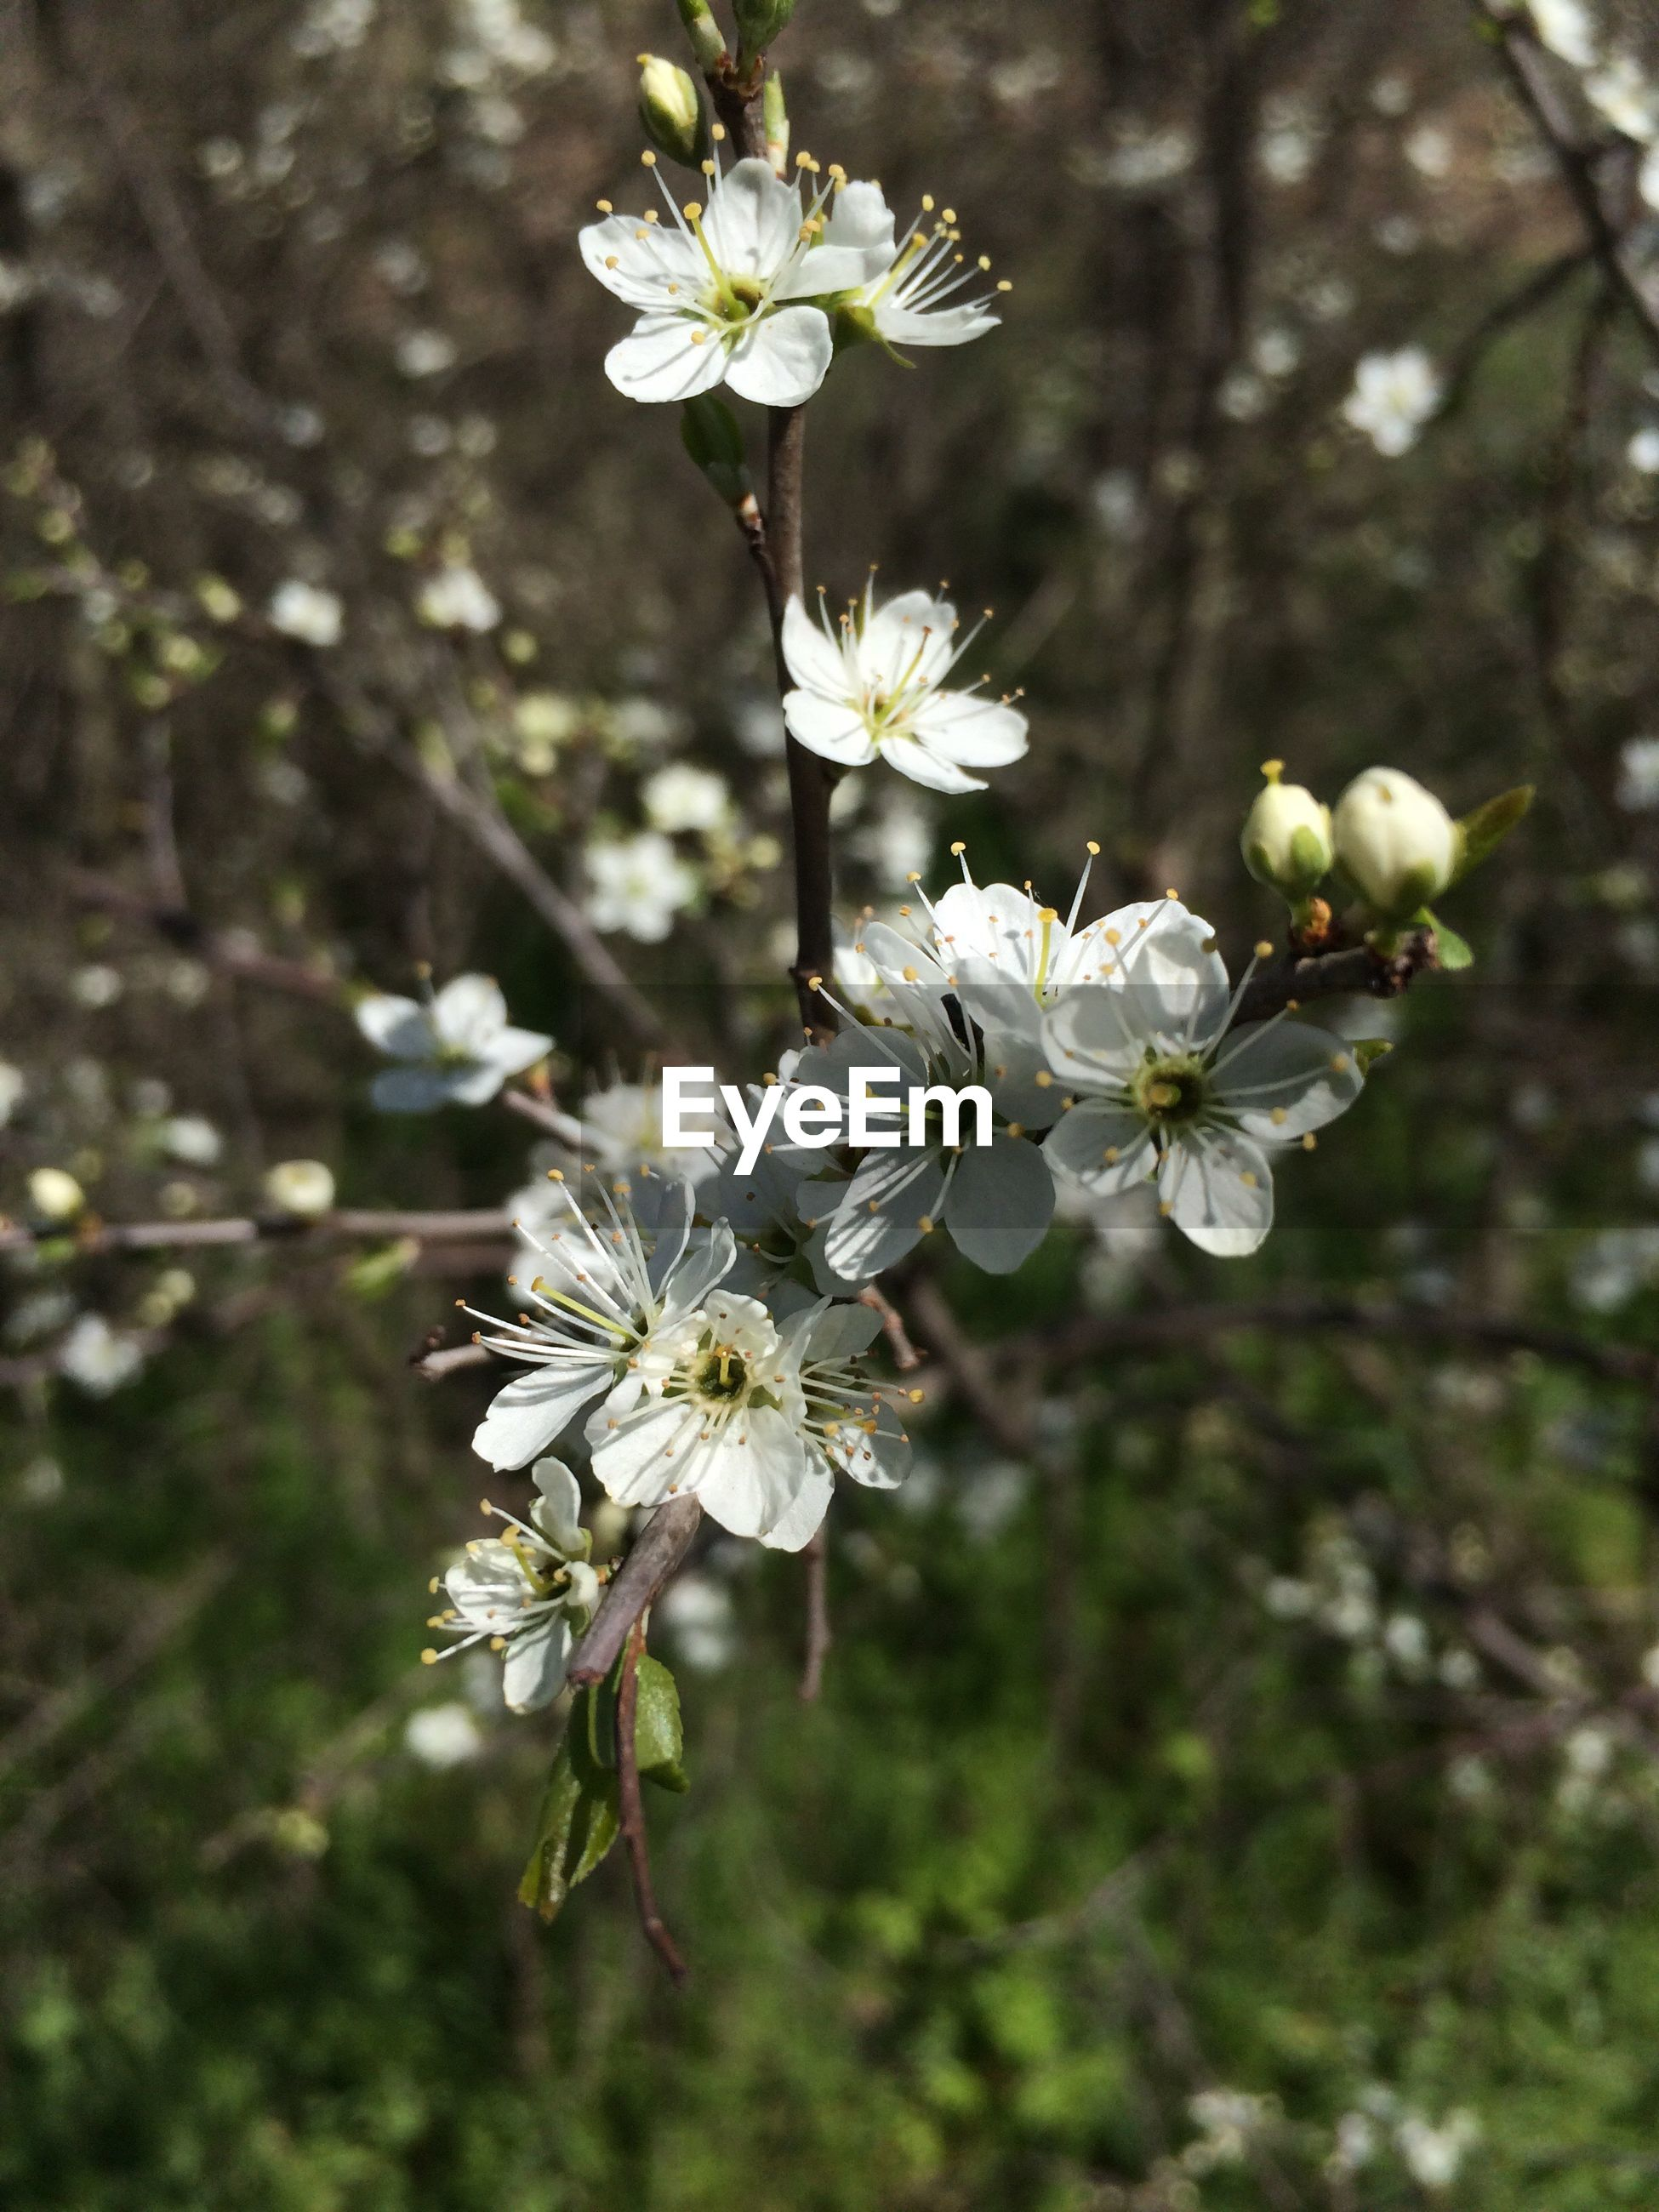 flower, blossom, nature, fragility, growth, white color, tree, apple blossom, beauty in nature, petal, delicate, springtime, freshness, branch, blooming, no people, stamen, tissue, flower head, spring, close-up, day, outdoors